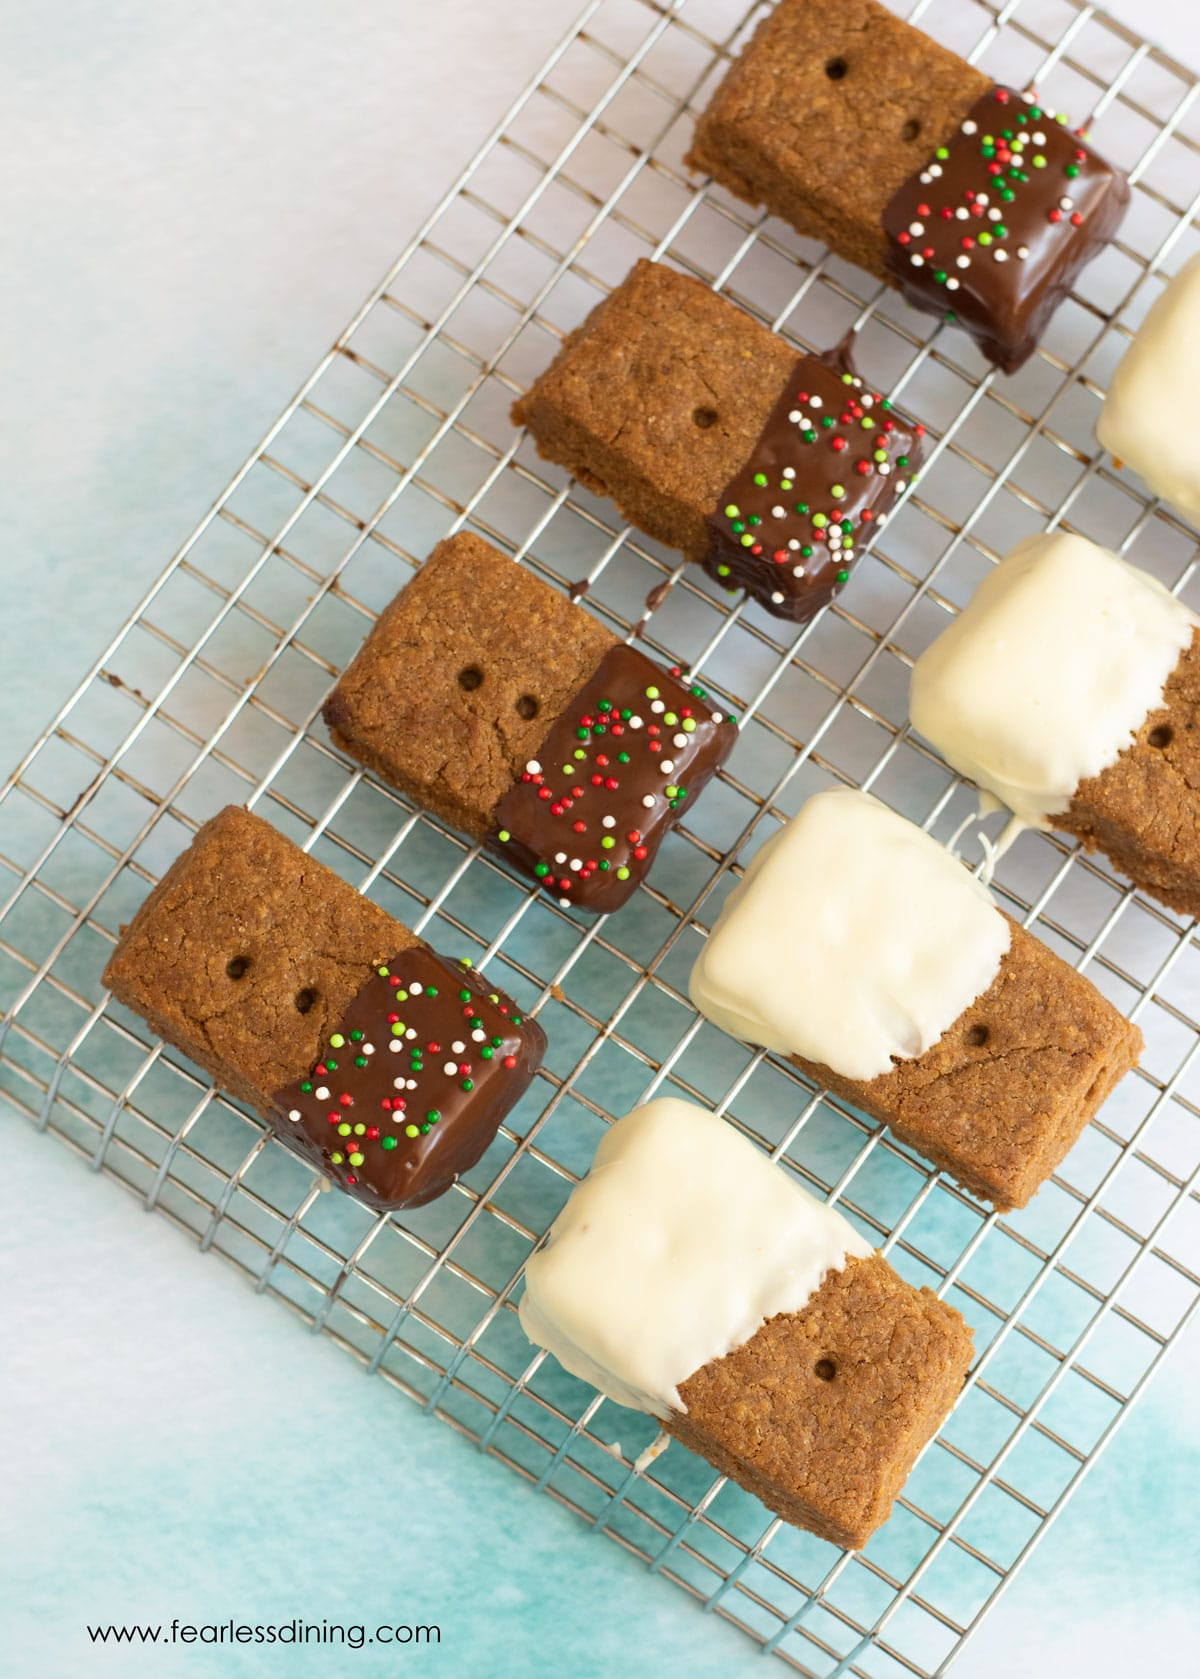 a rack filled with gingerbread shortbread